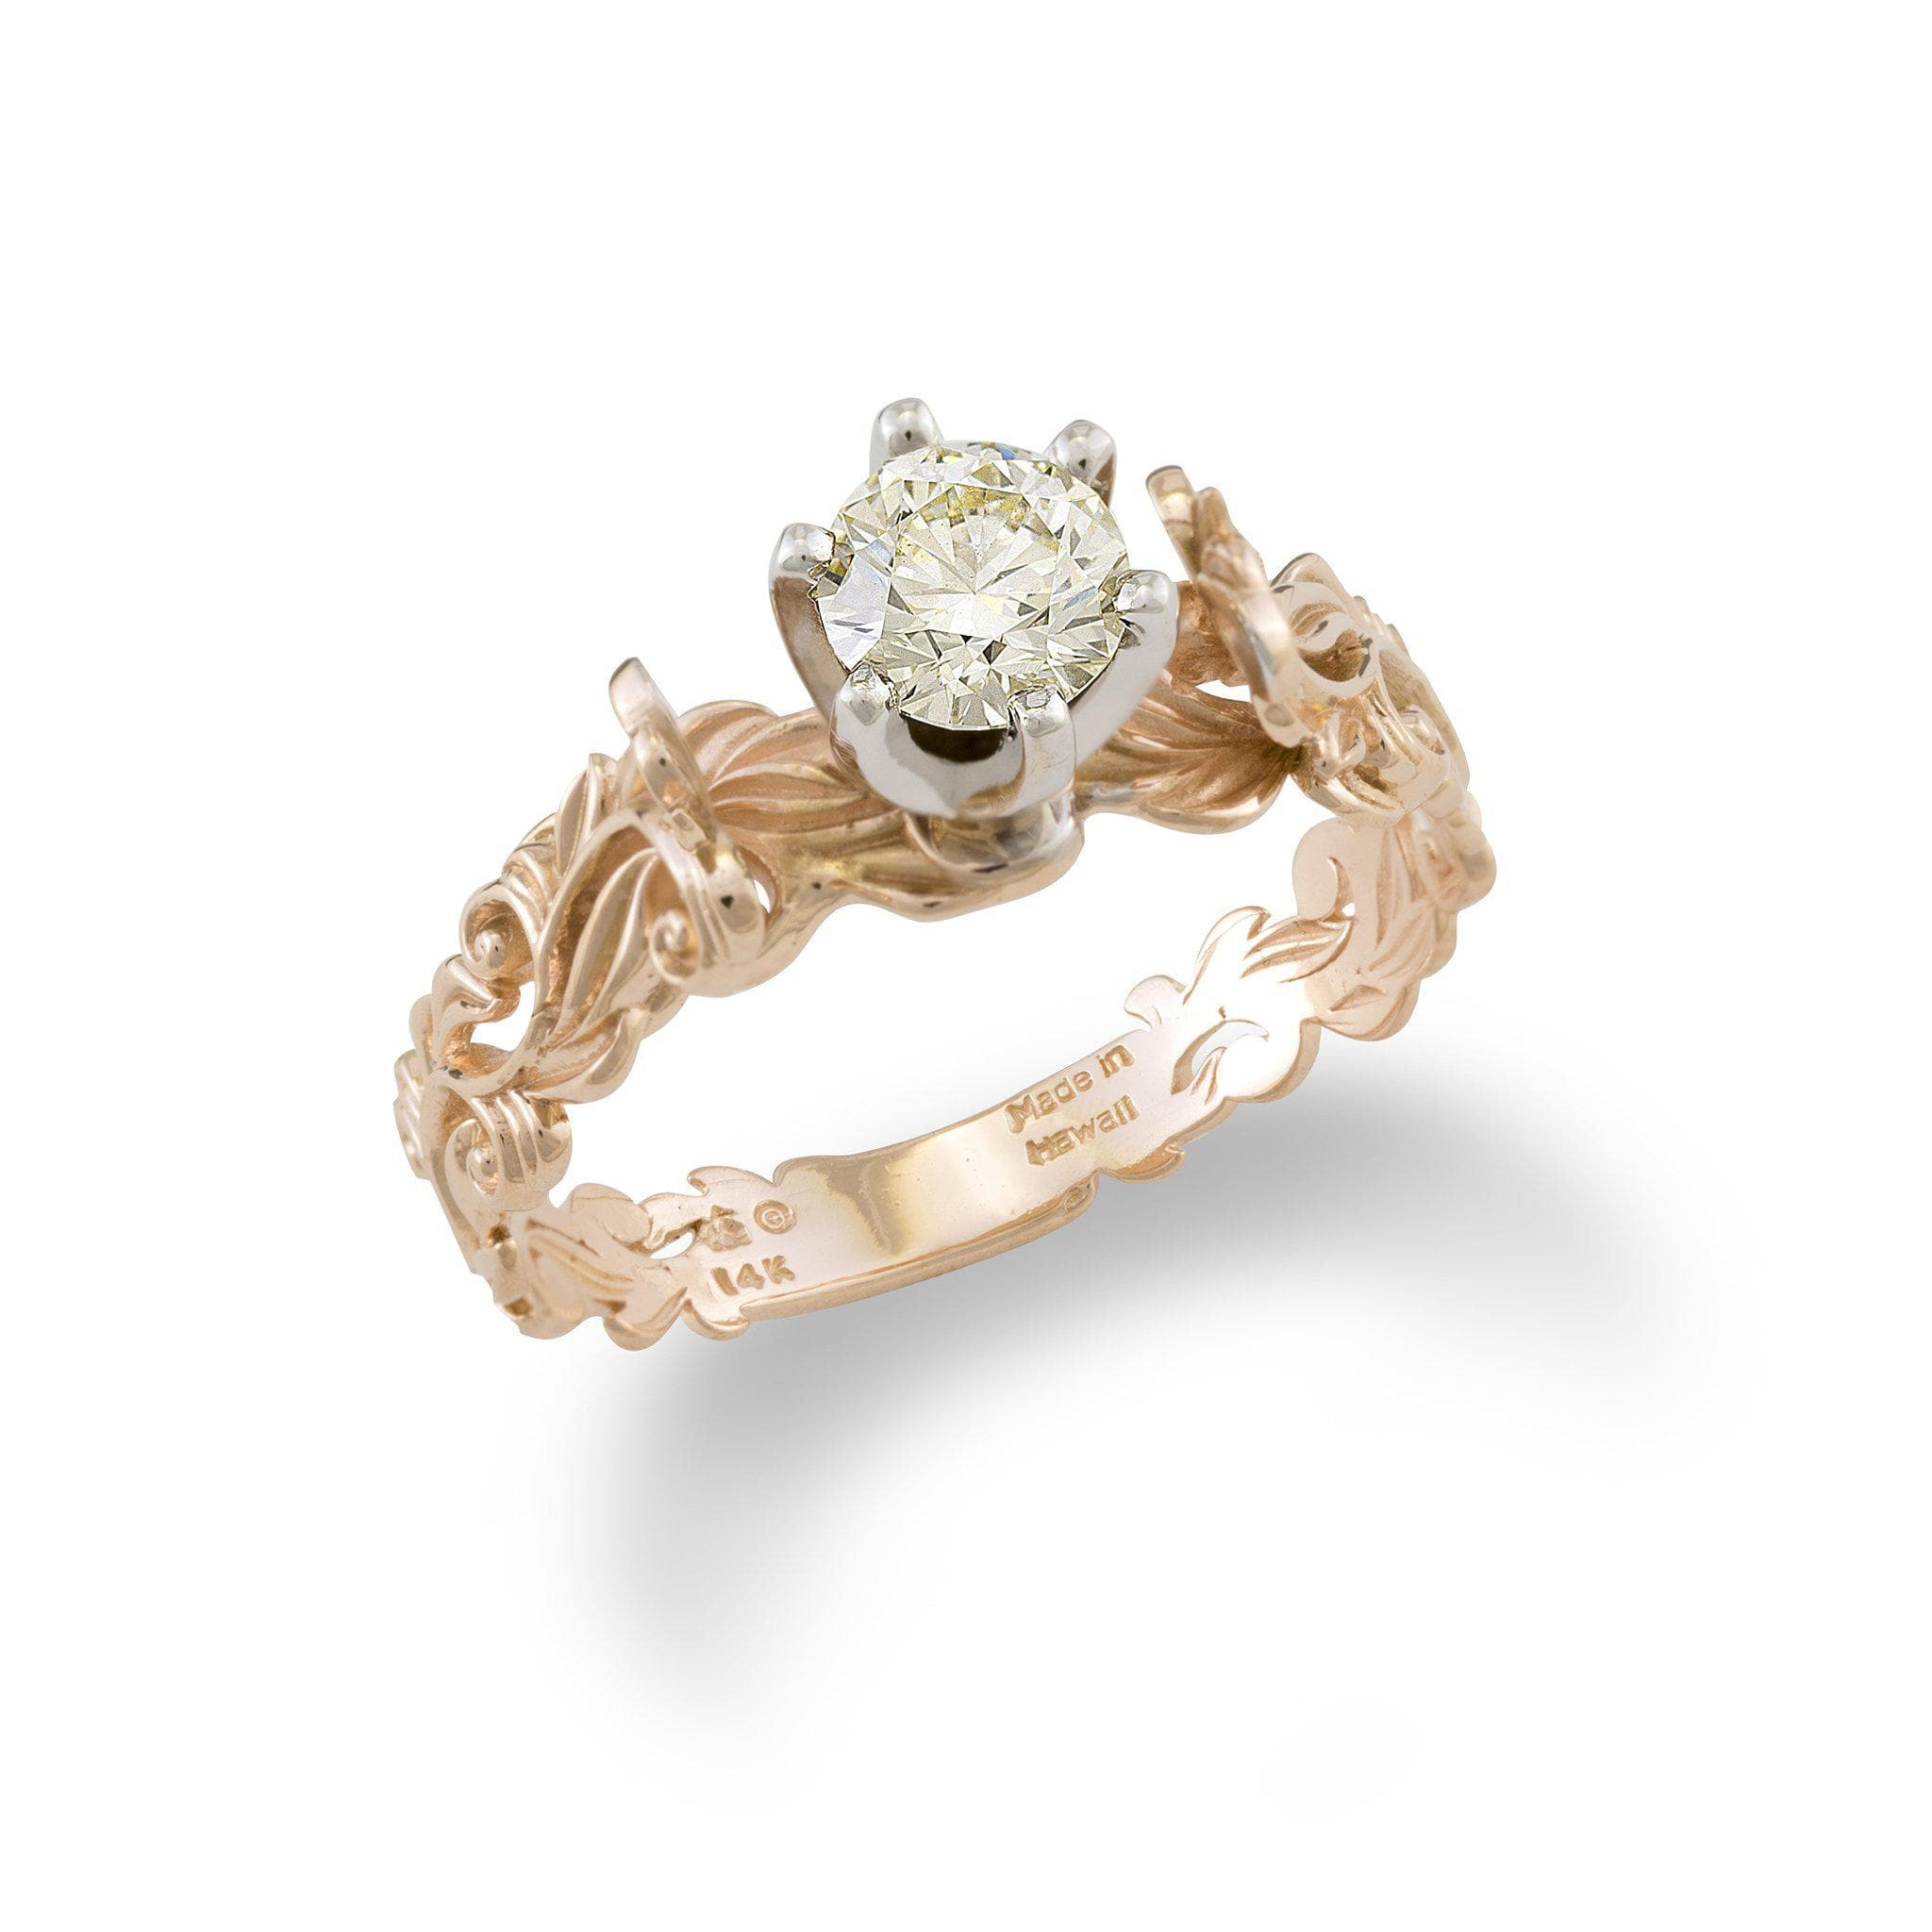 rings ring gold hawaiian wedding inspired ocean heirloom with rose collections bridal diamond engagement collection in